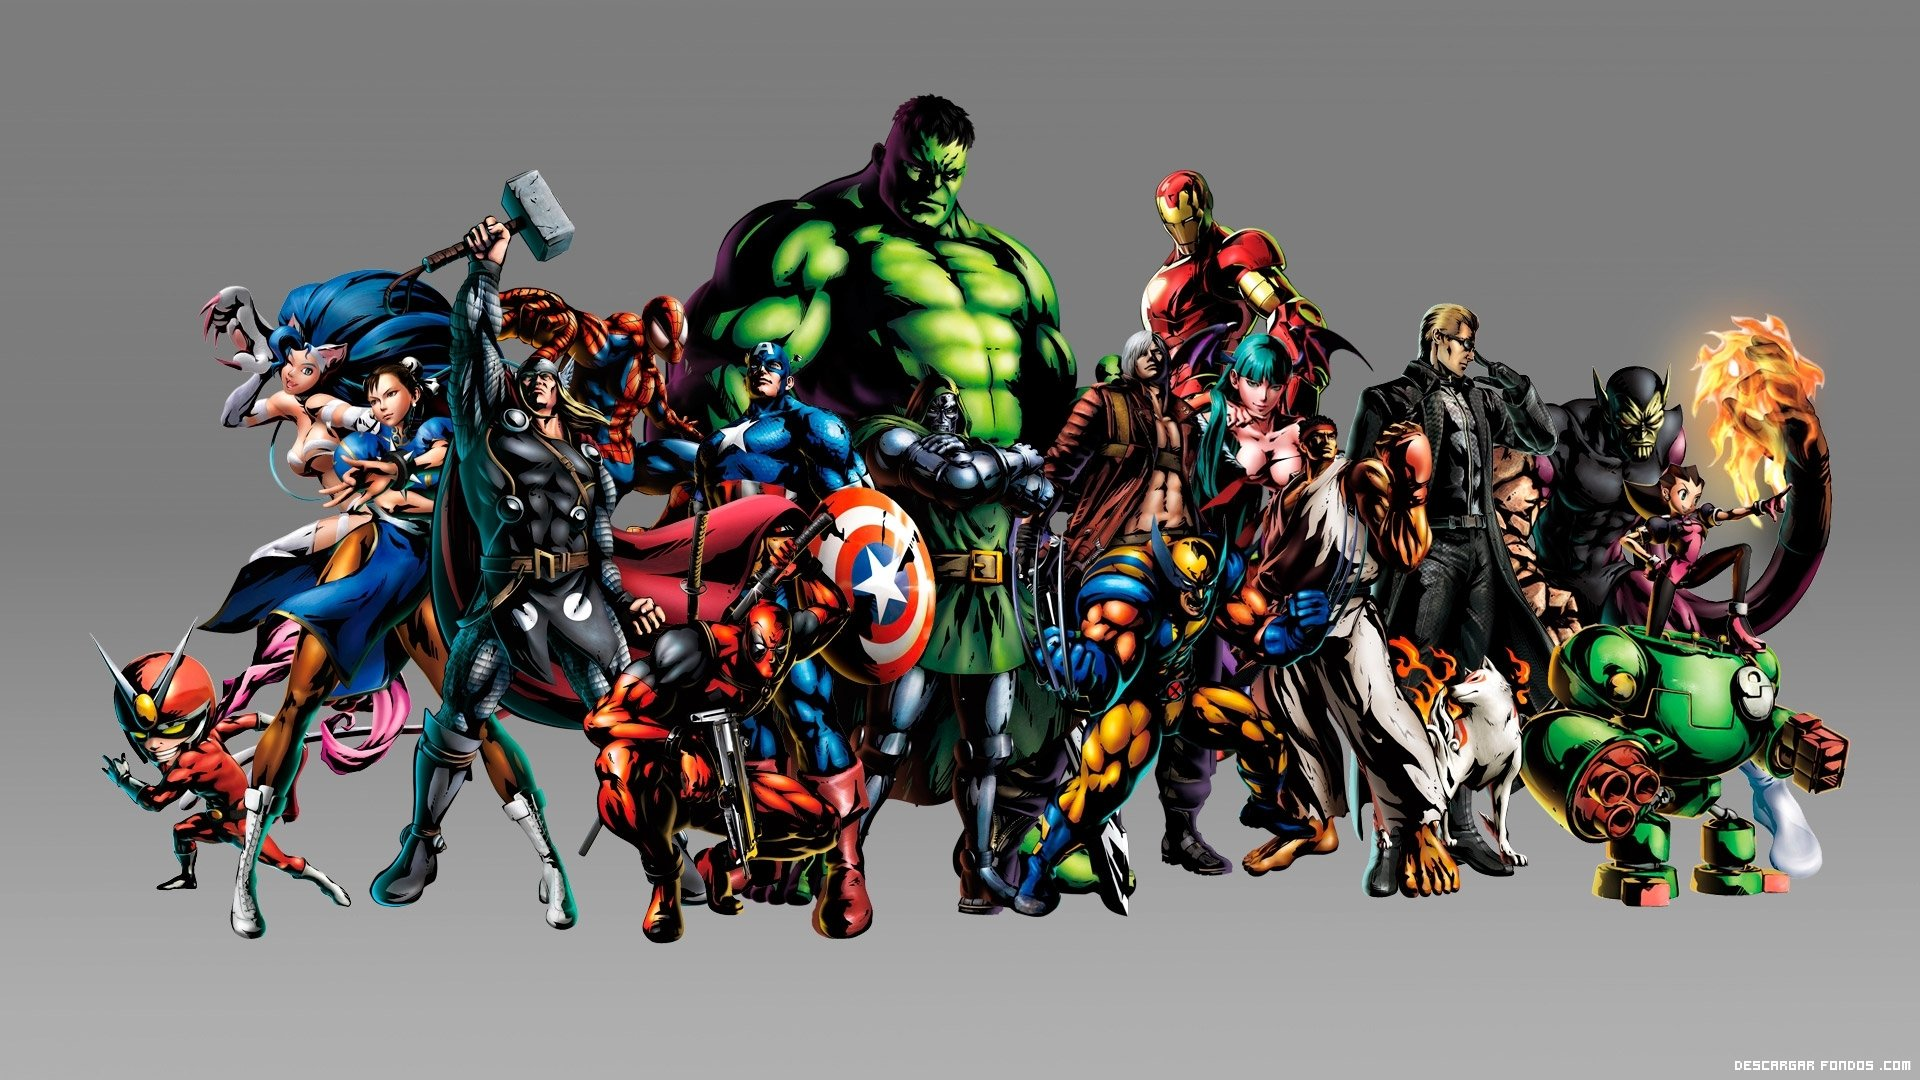 Download Marvel Super Heroes HD Wallpaper 6648 Full Size 1920x1080